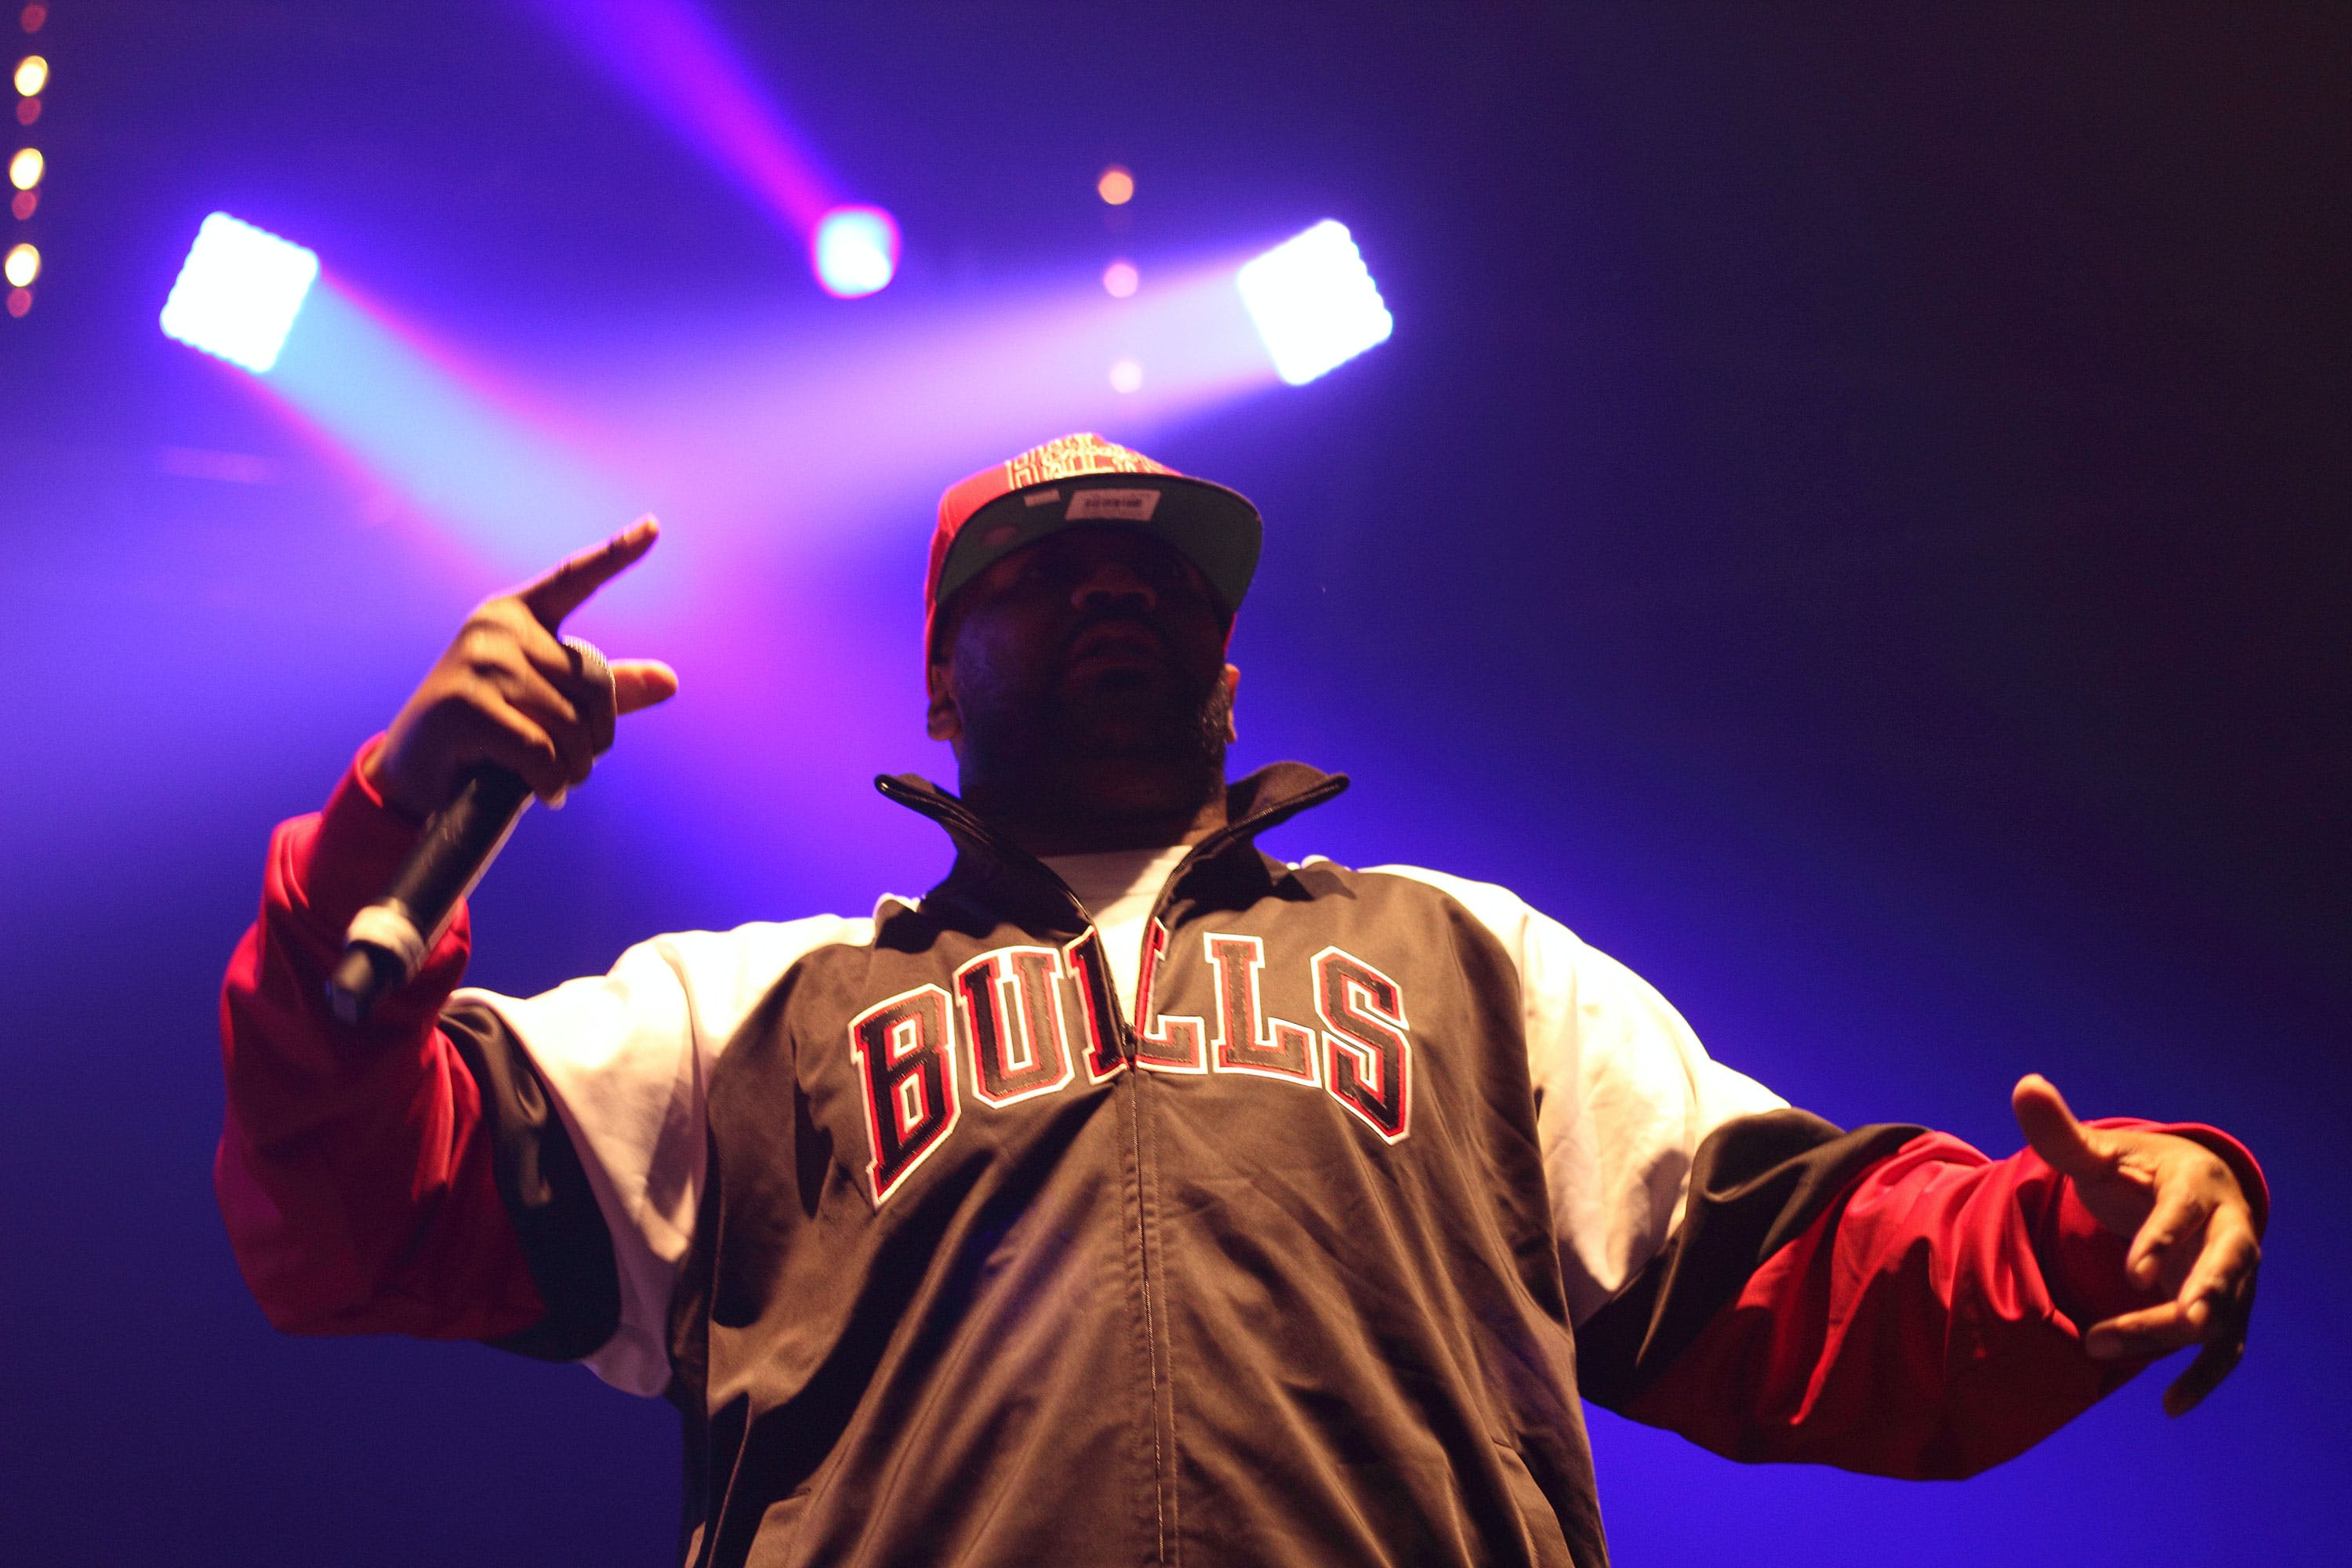 Ghostface Killah (Wu-Tang Clan) performing in Zénith, Paris on May 23, 2013. Wu-Tang Clan performed for free in Toronto on Saturday in partnership with a cannabis producer, raising questions about canadian cannabis advertising which restricts celebrity endorsements